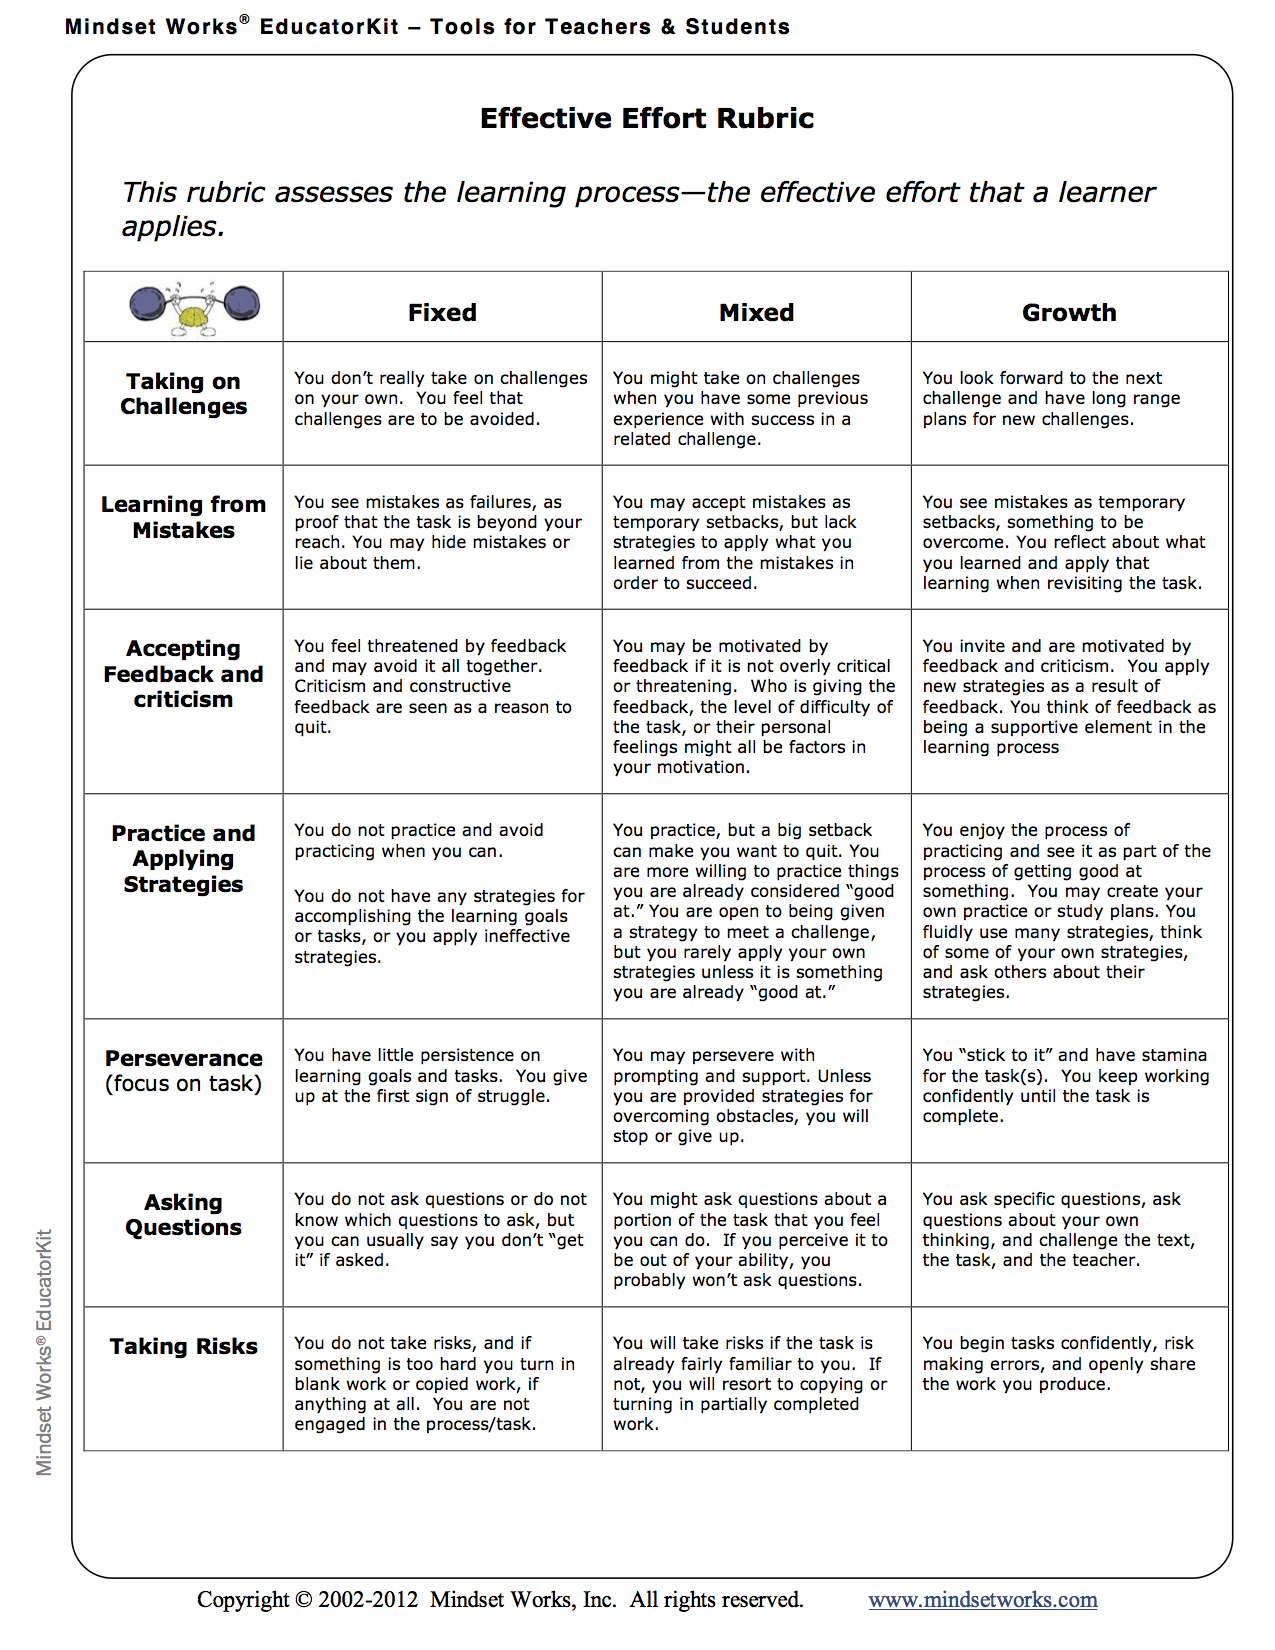 Effective Effort Rubric